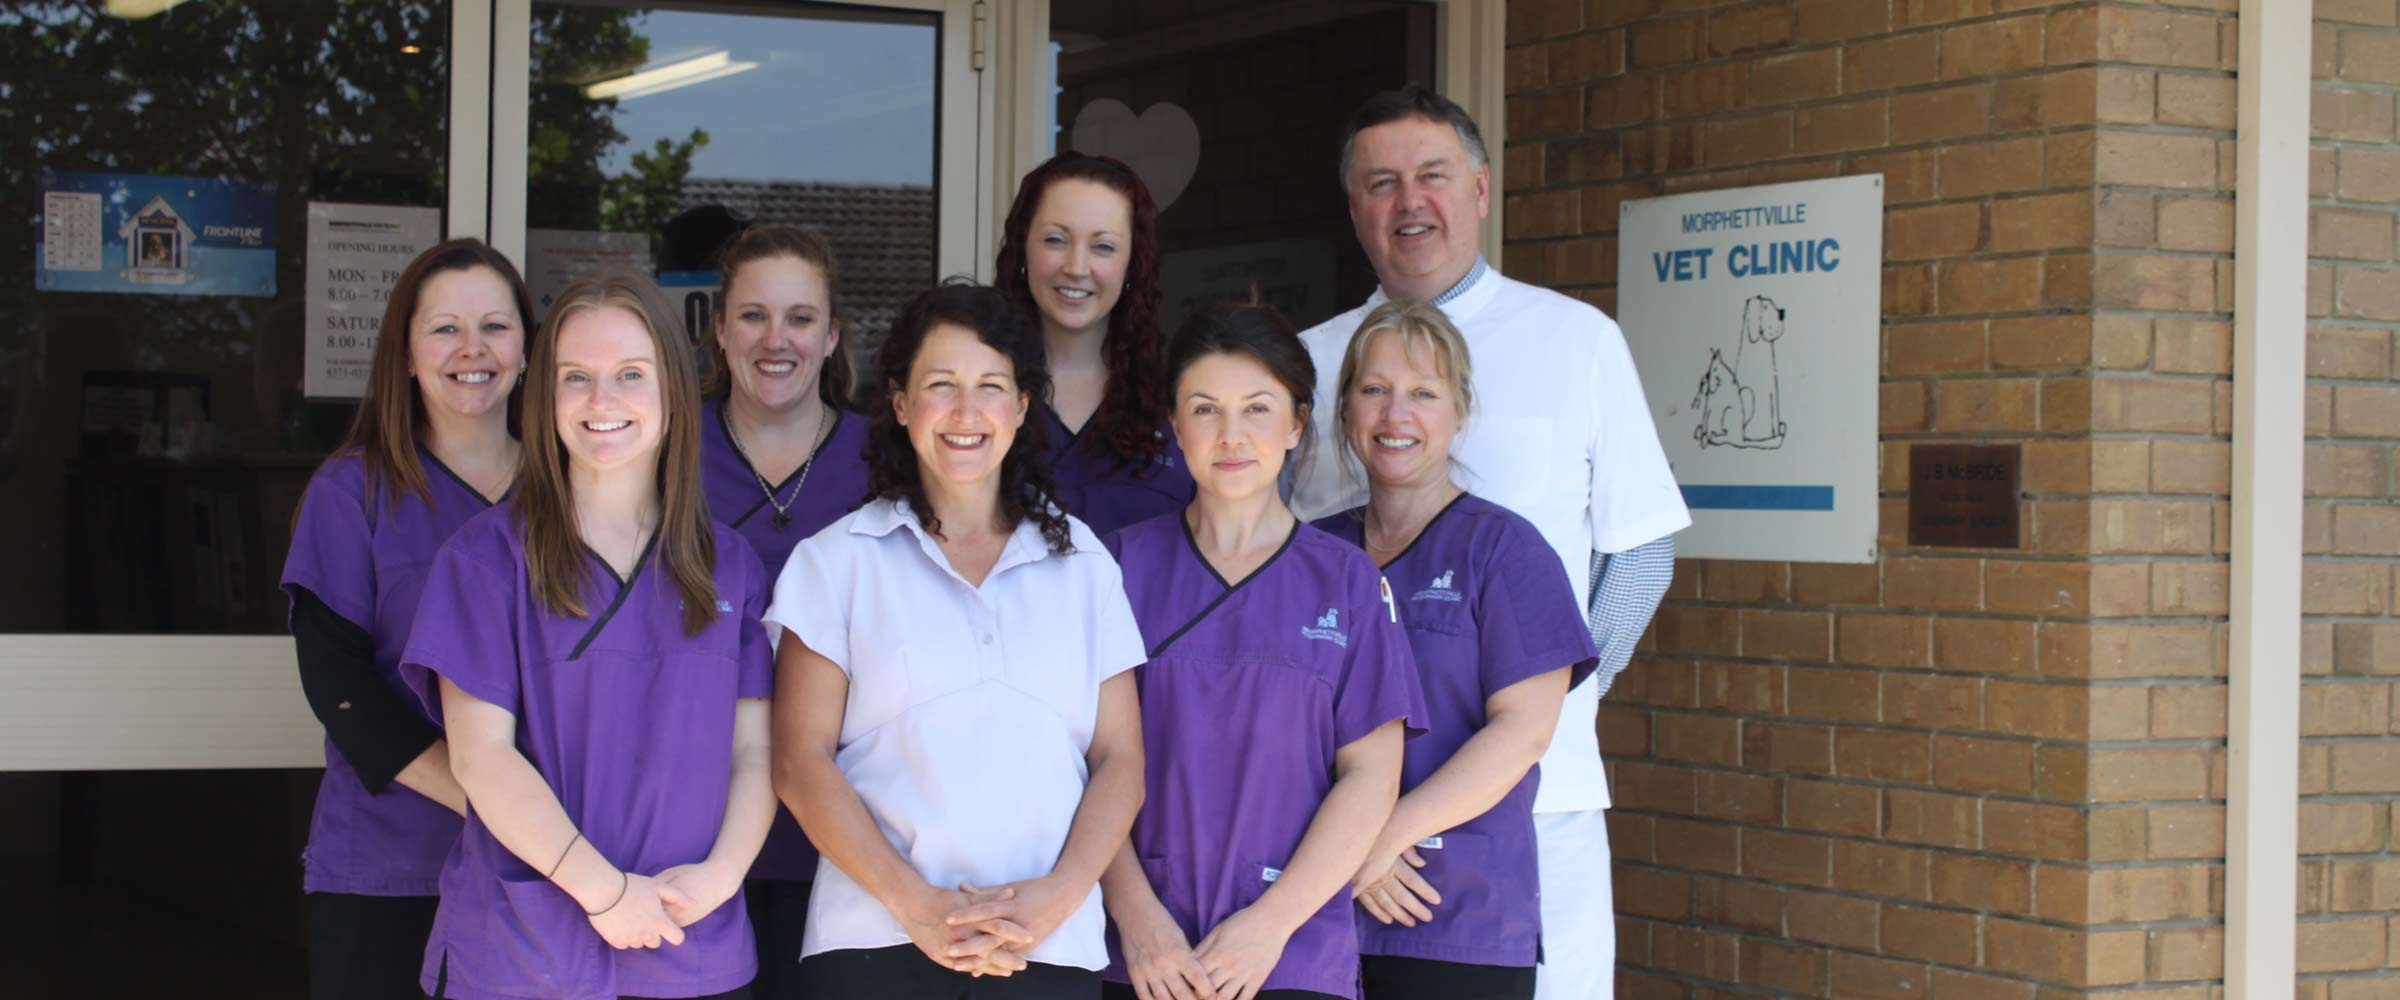 morphettville veterinary clinic our team infront of clinic